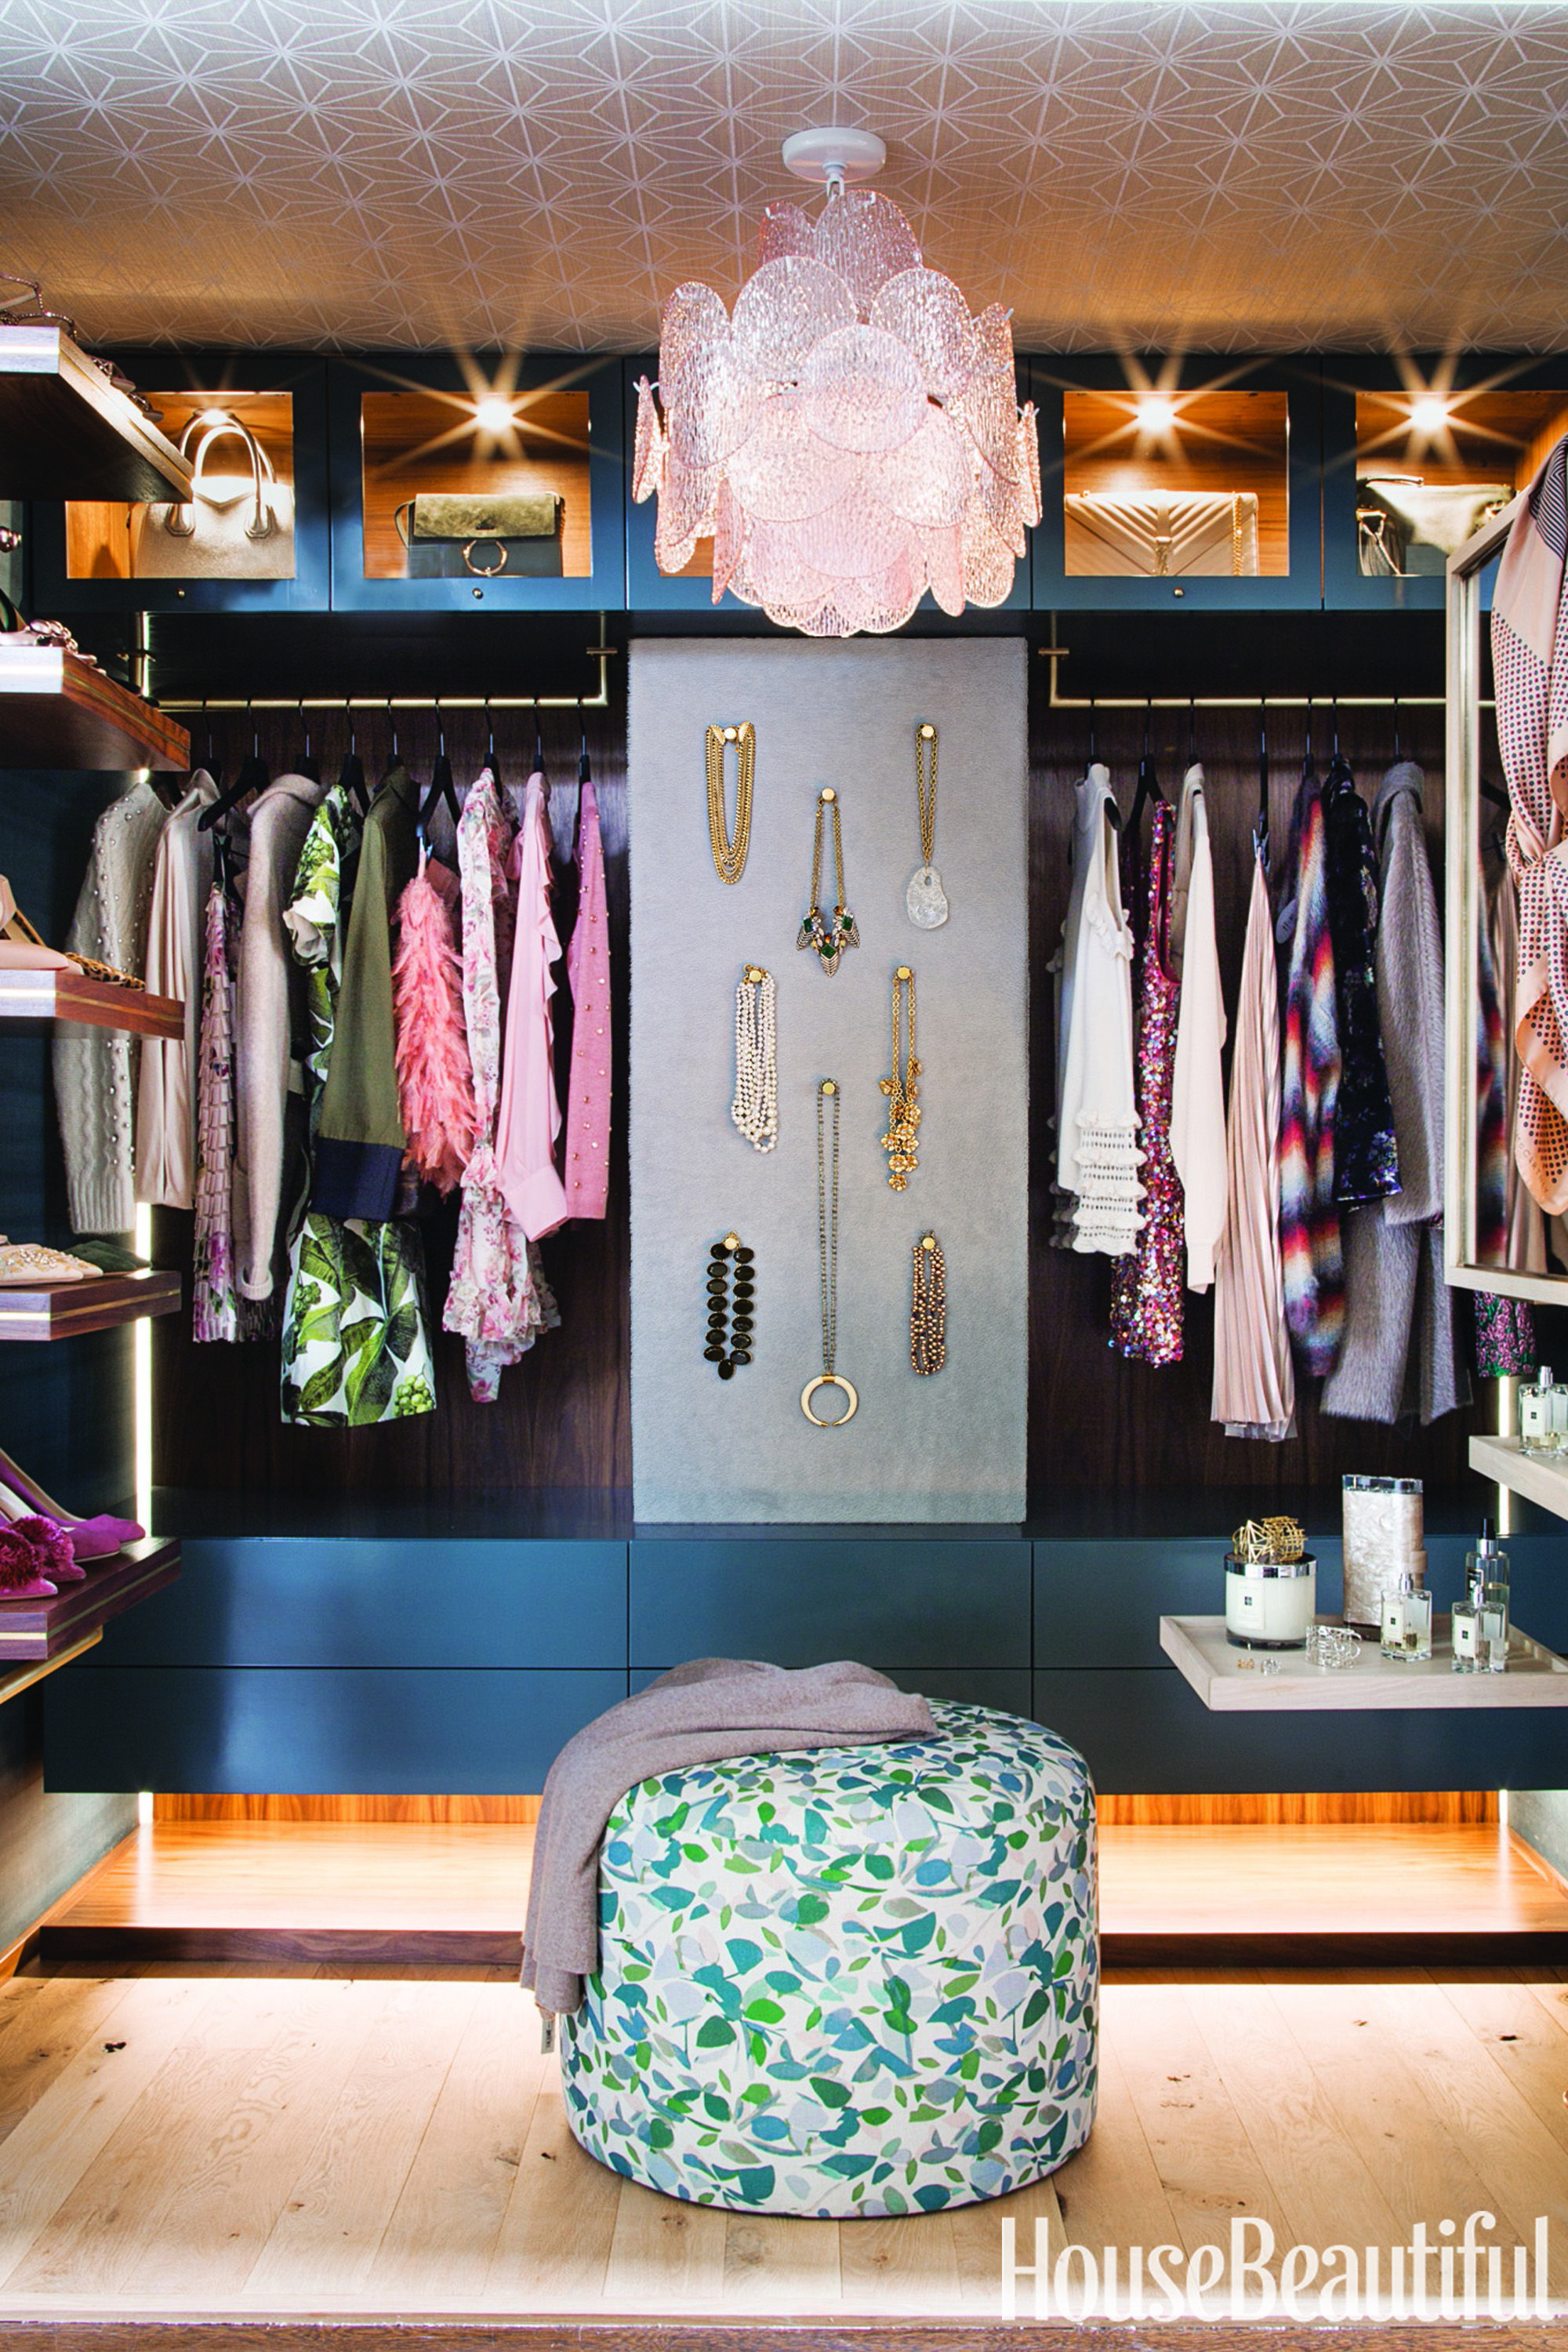 Designer Sofas Closet Organizers Share Their Tips For A Clutter-free